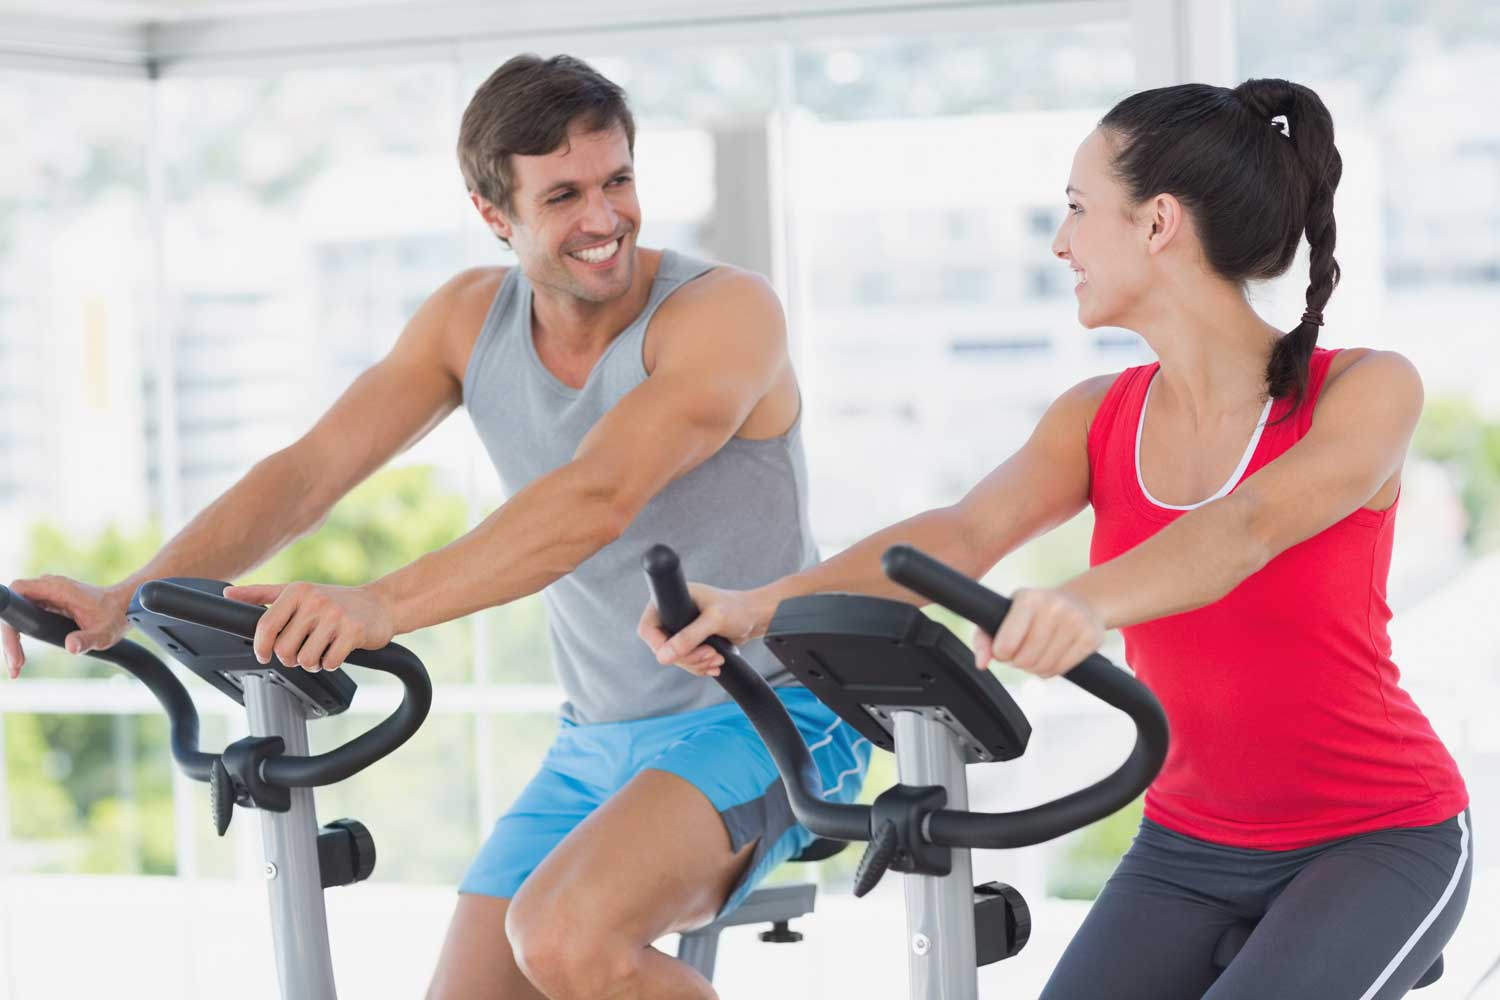 How to choose the right exercise bike?